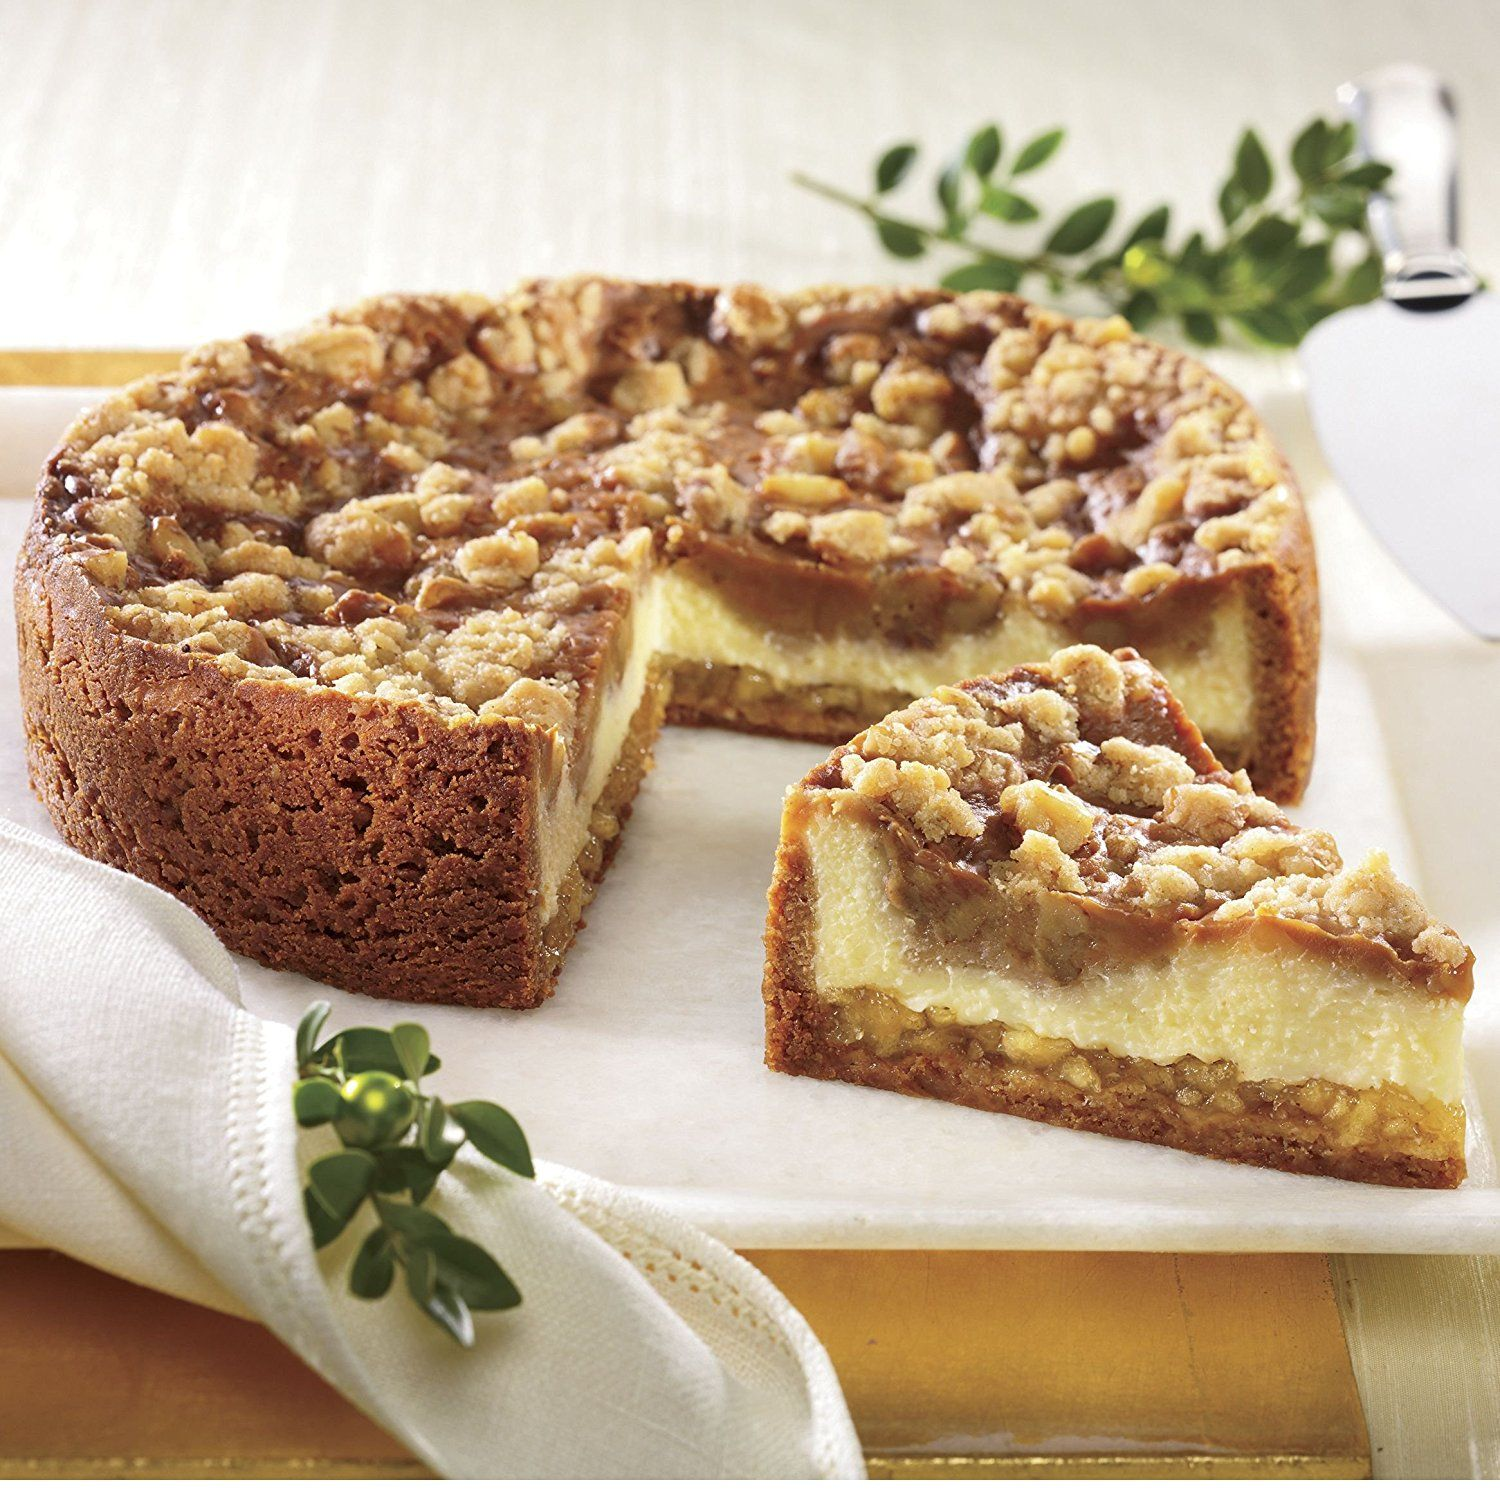 Caramel apple cheesecake from the swiss colony food